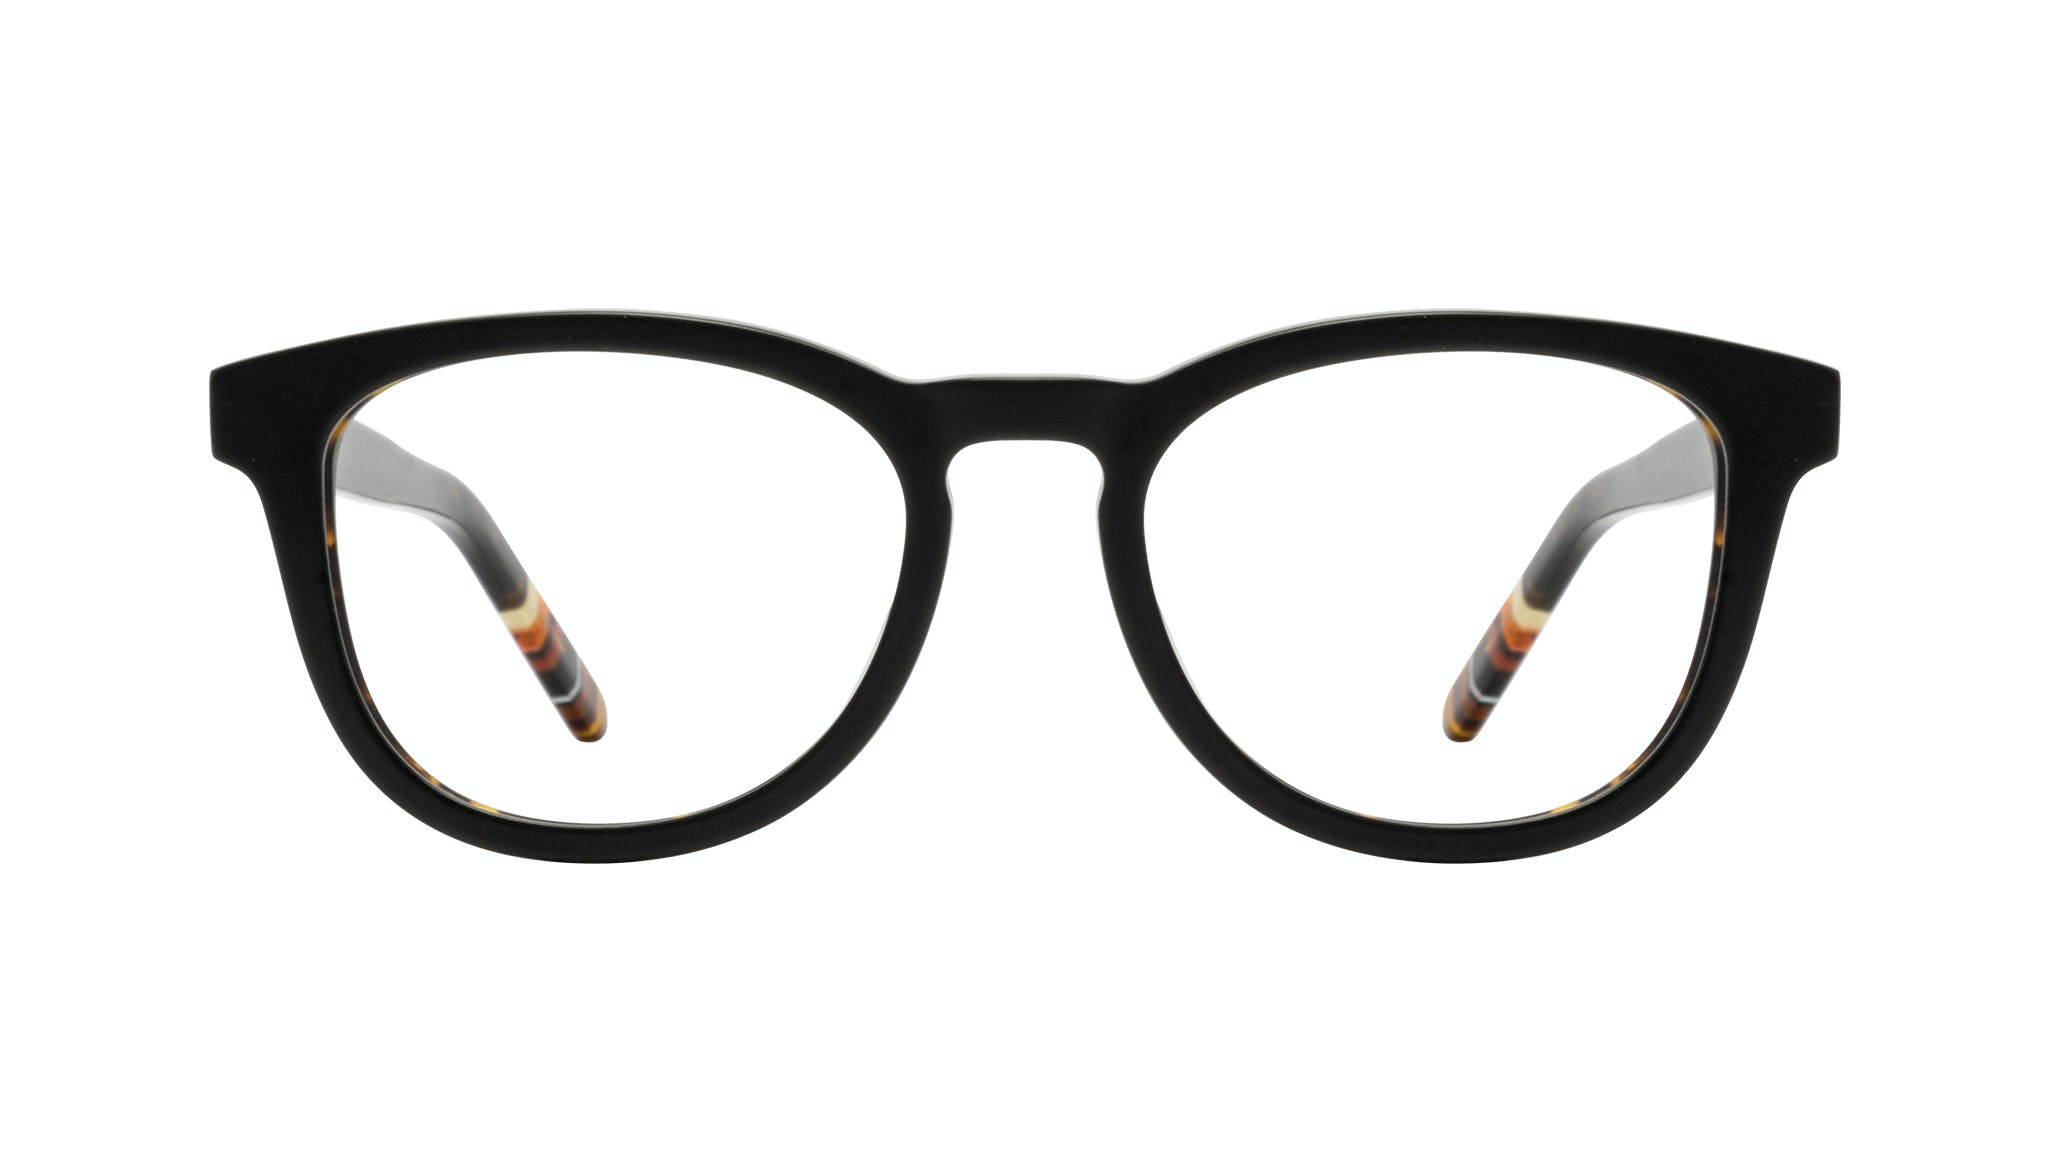 Affordable Fashion Glasses Round Eyeglasses Men Goal Black Tort